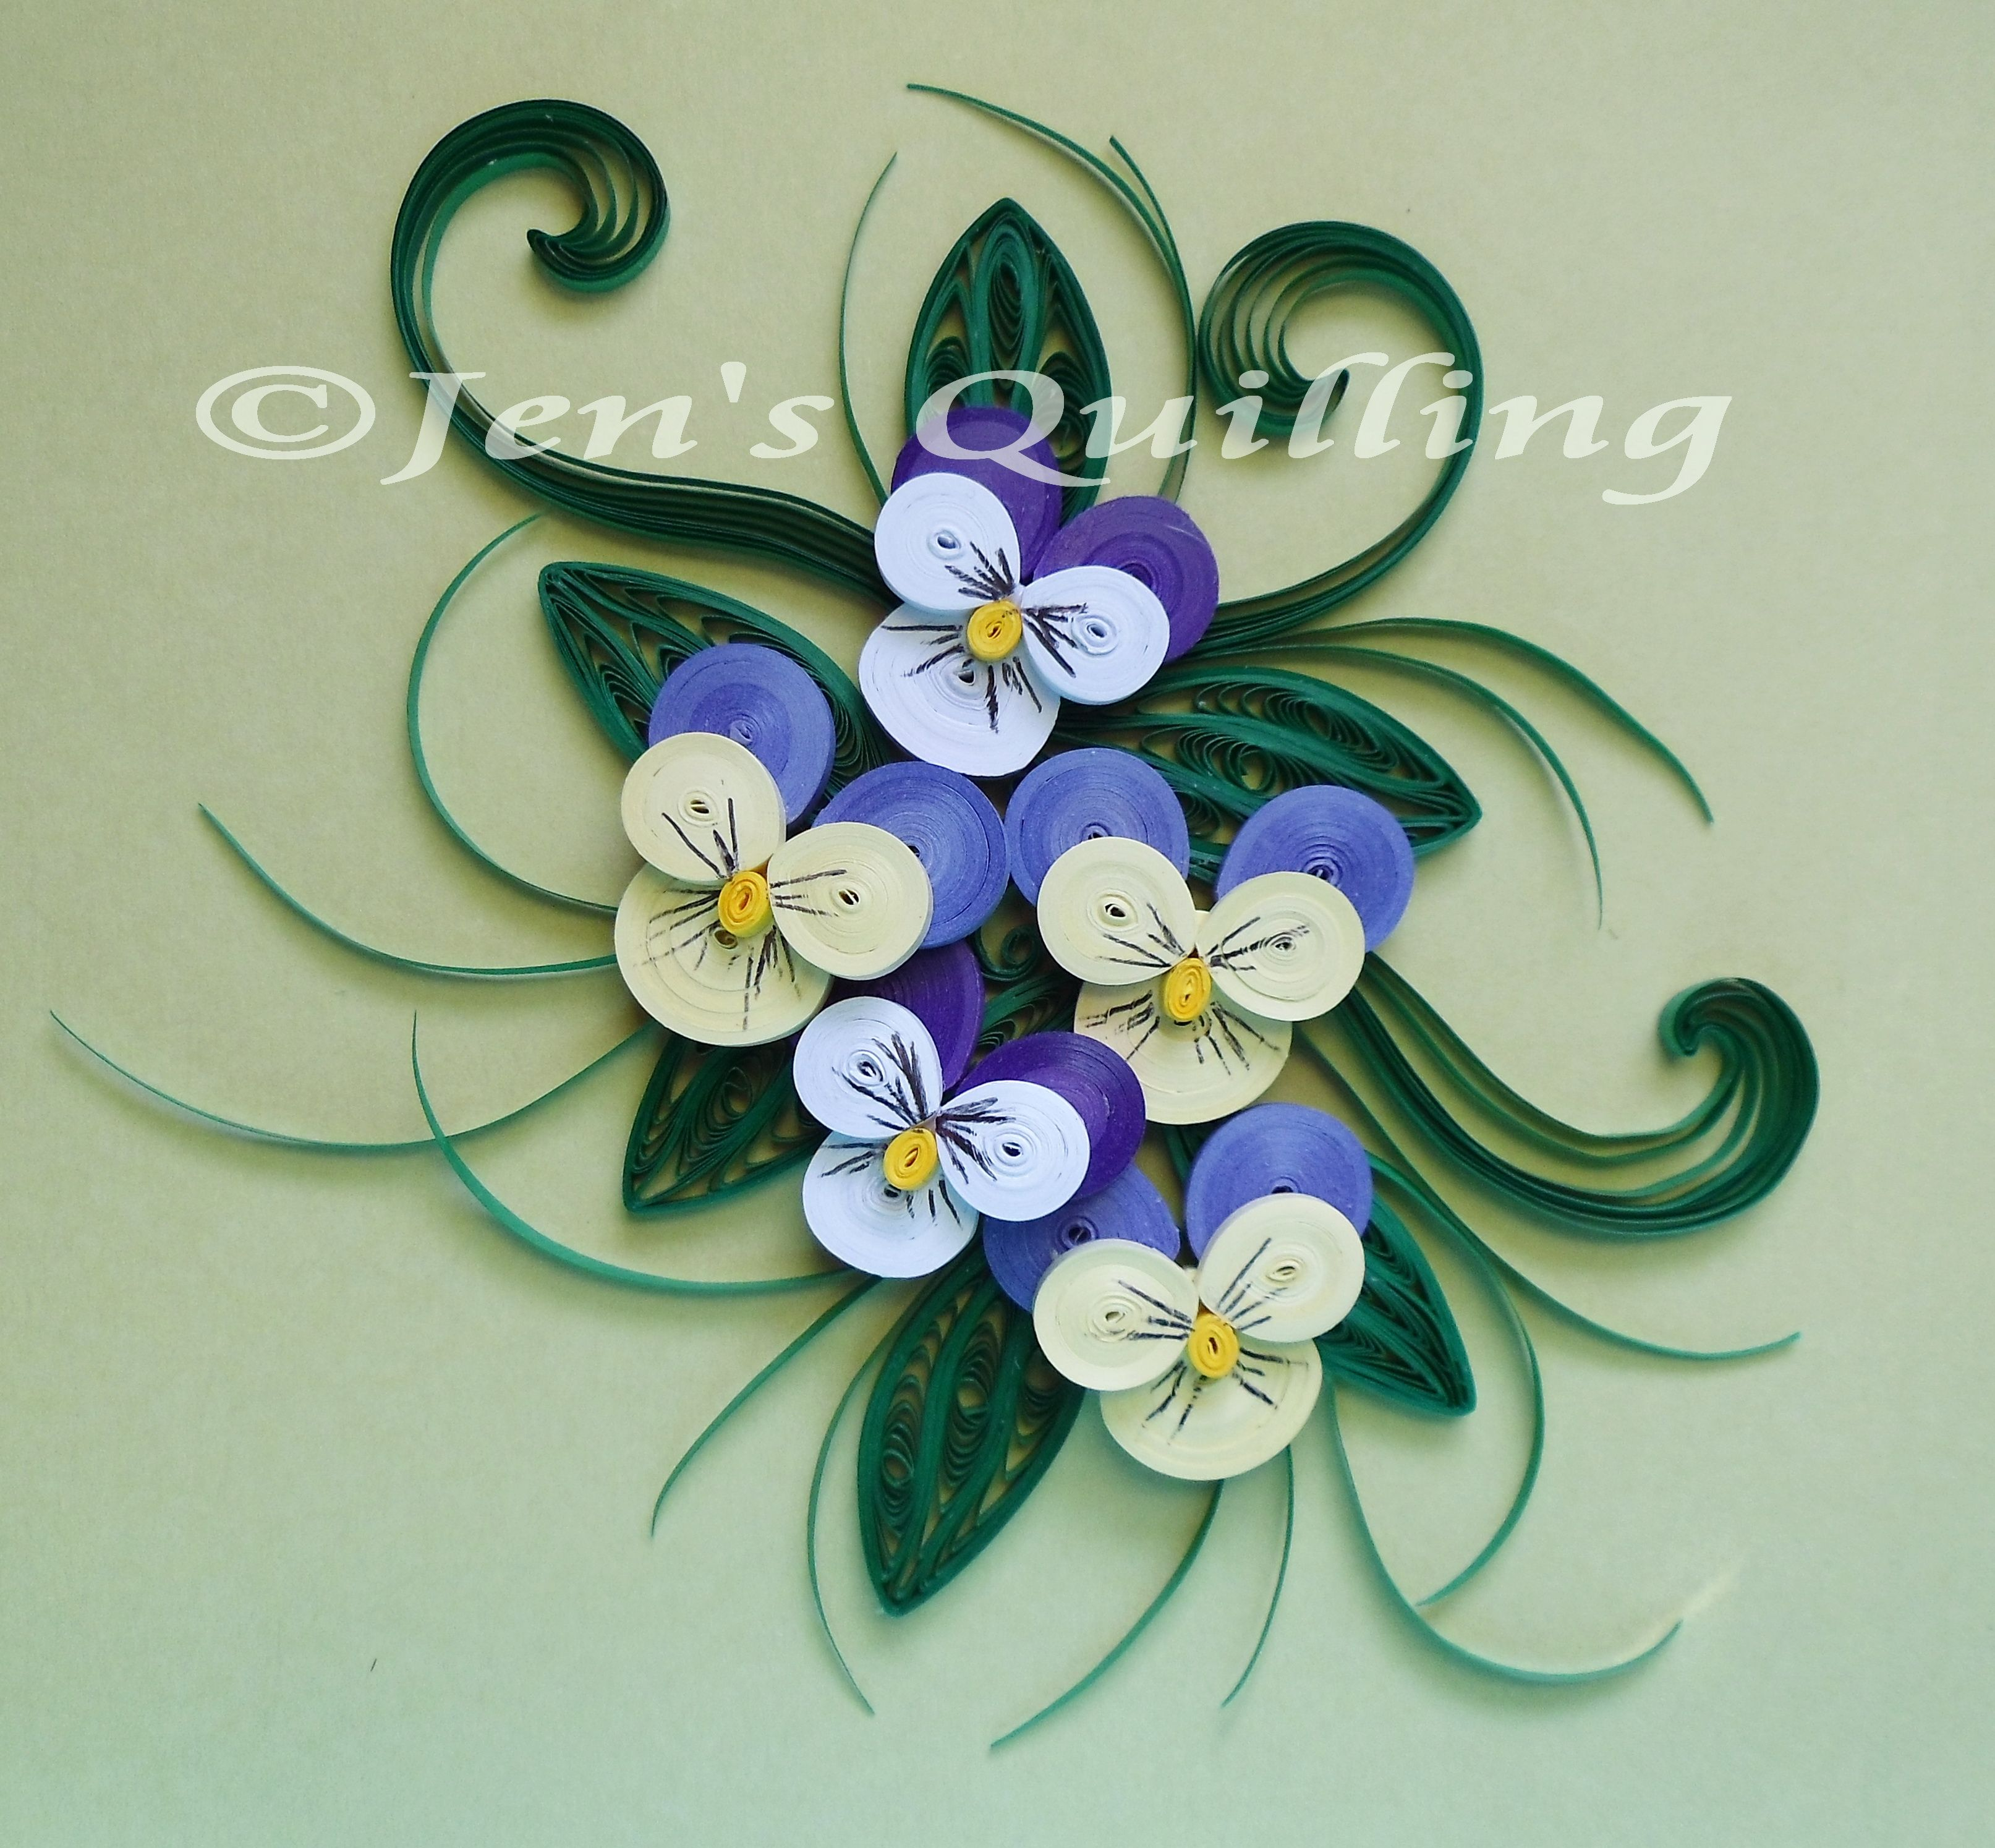 Quilled Violas Quilling Designs Quilling Work Quilling Craft